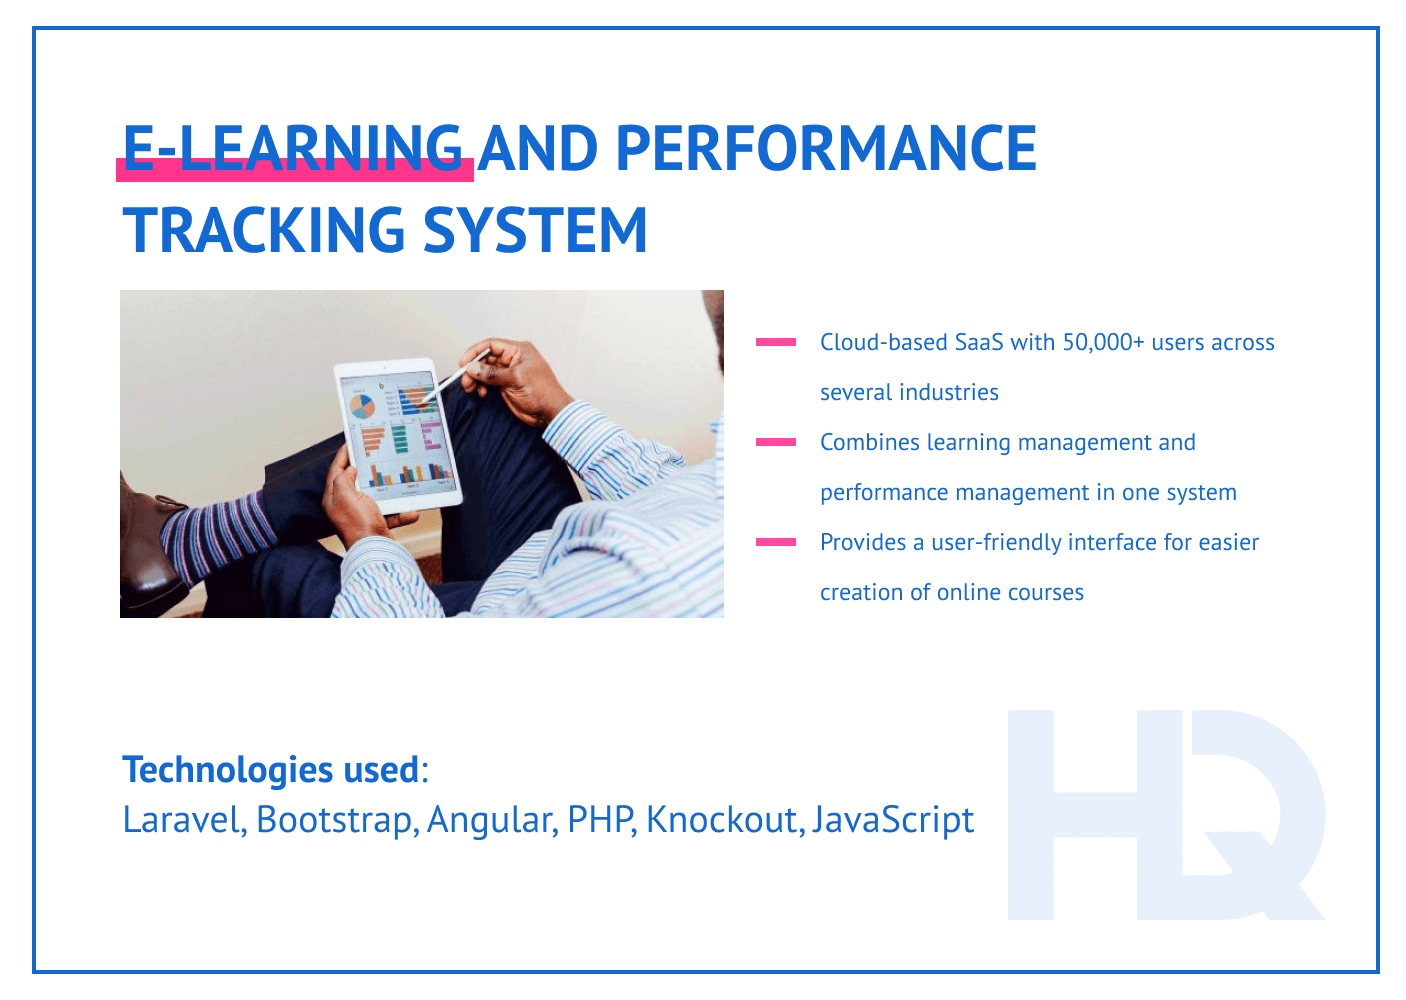 Case study: LMS and performance tracking system